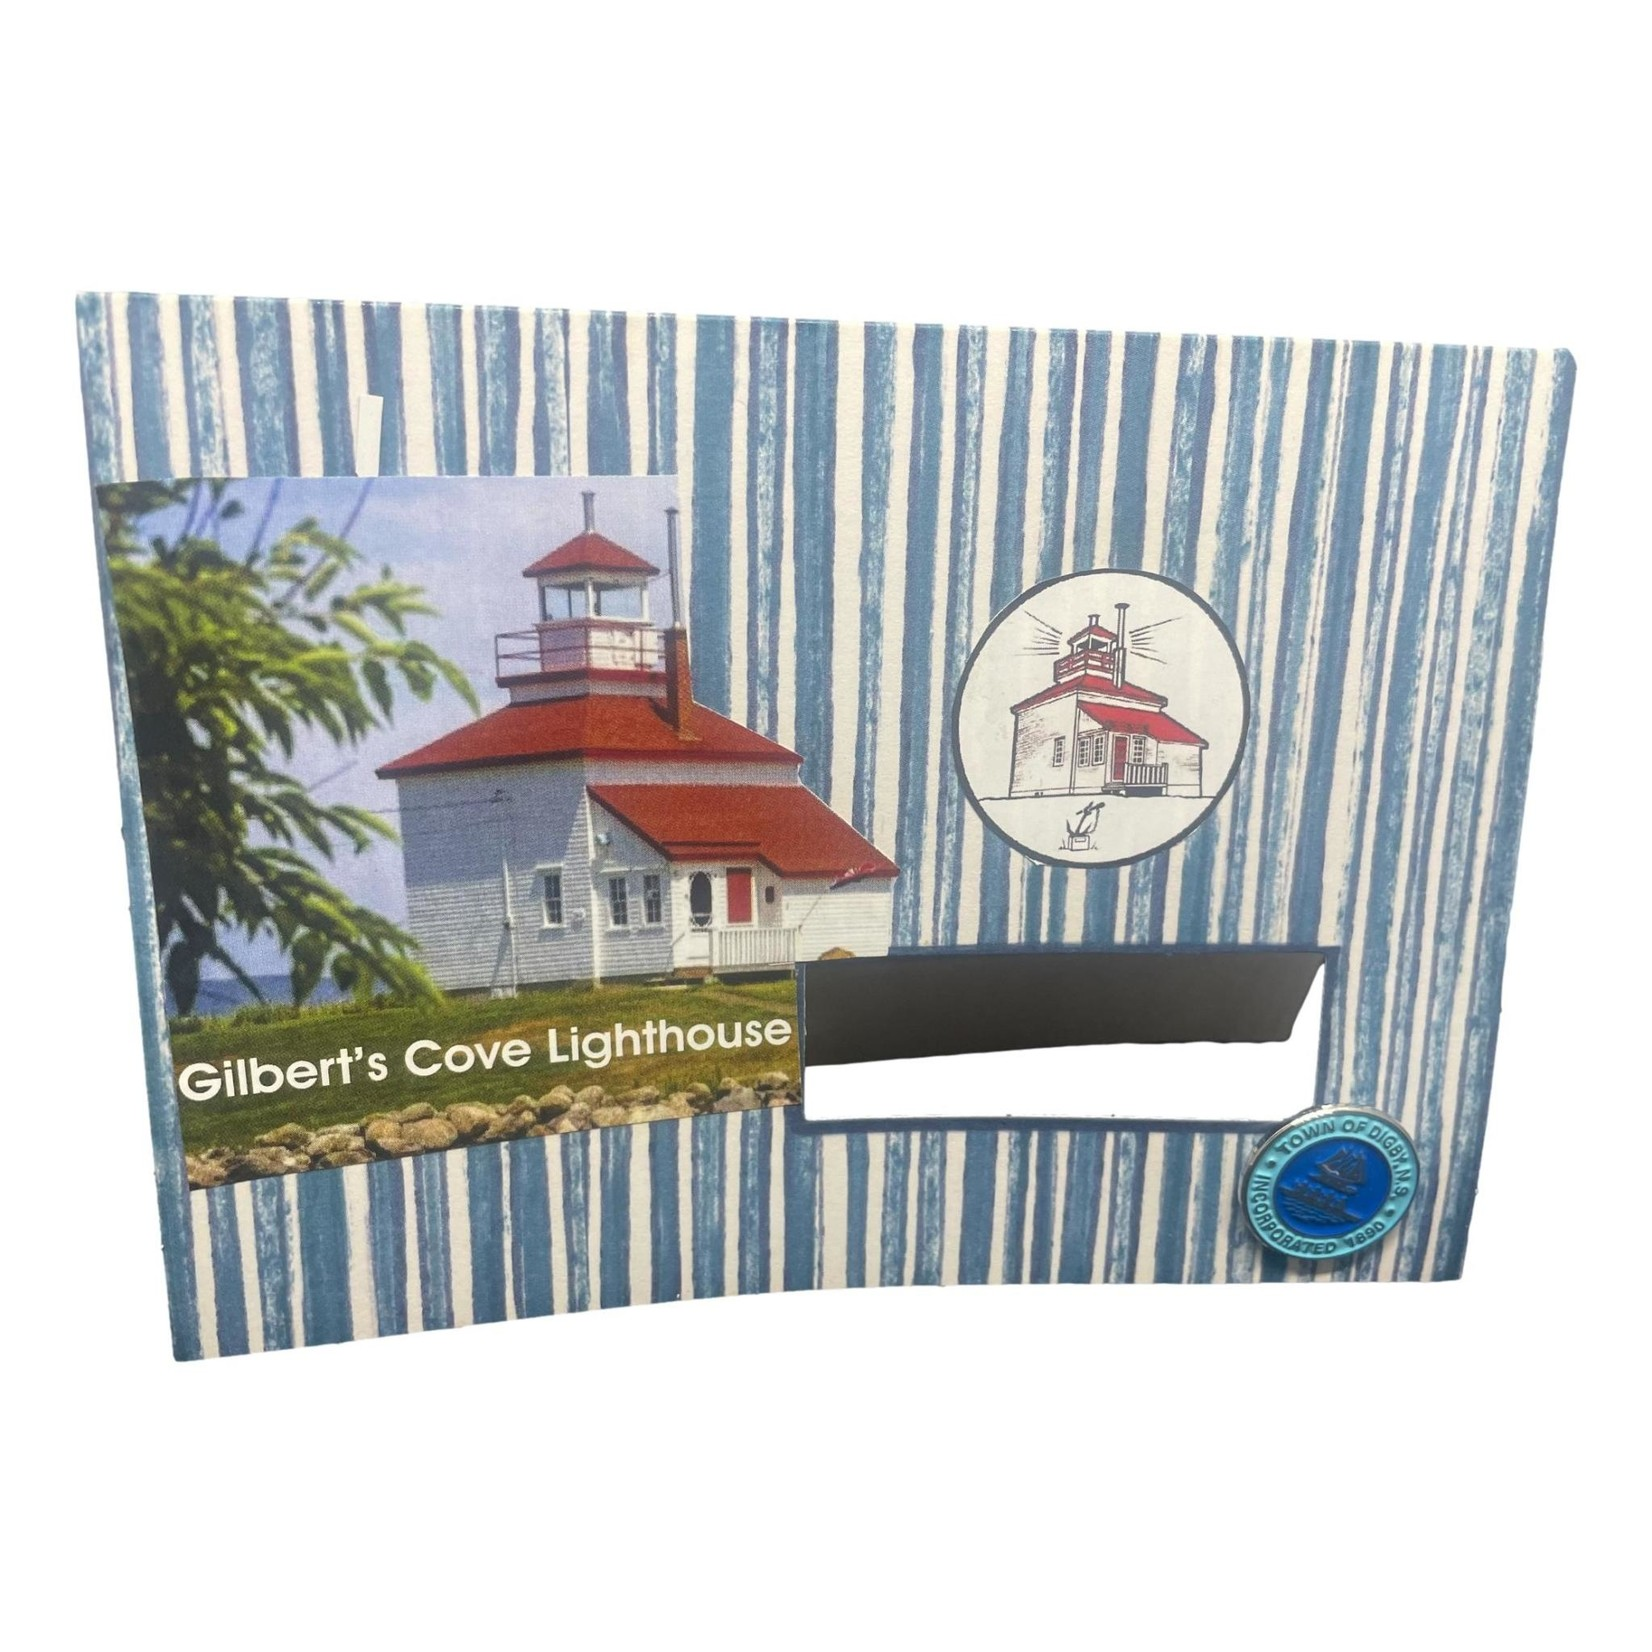 Off The Wall Gallery Gilbert's Cove Lighthouse Note Card